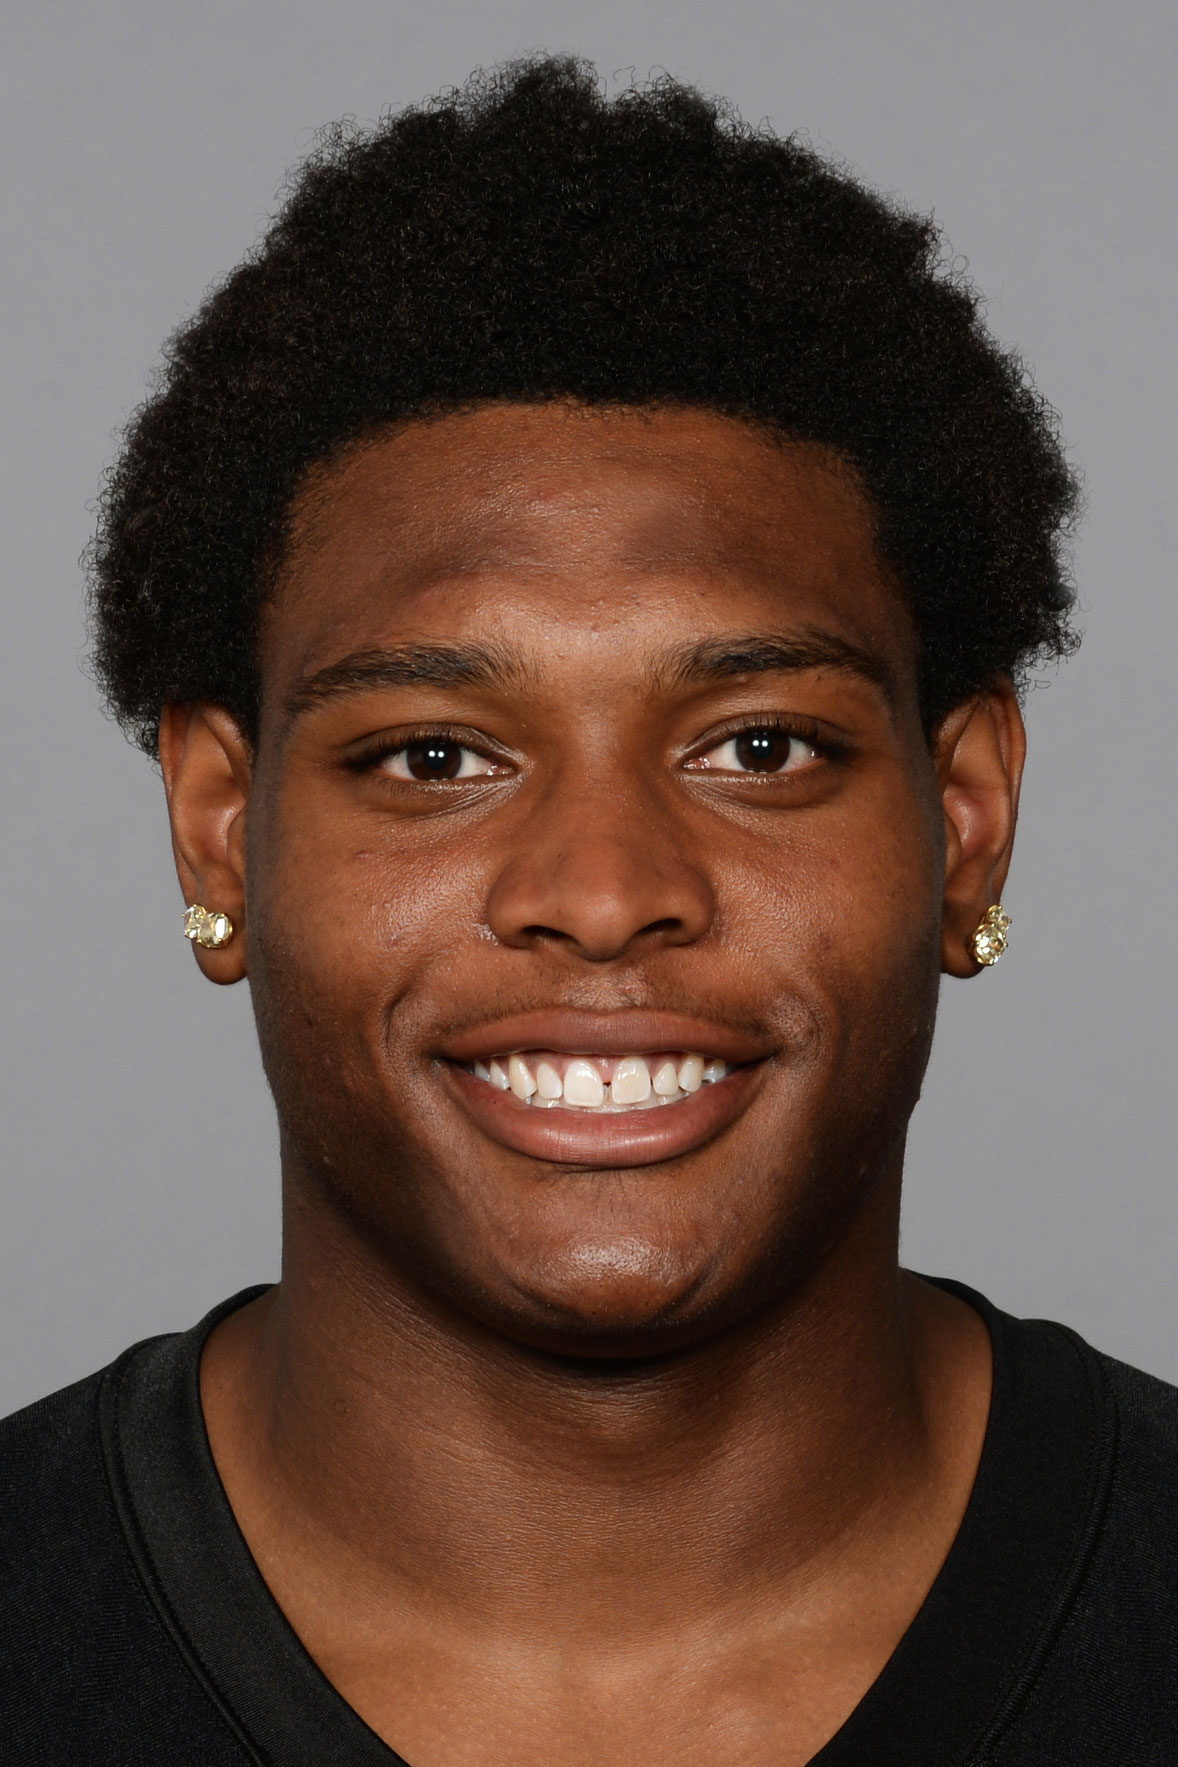 jalen ramsey - photo #4